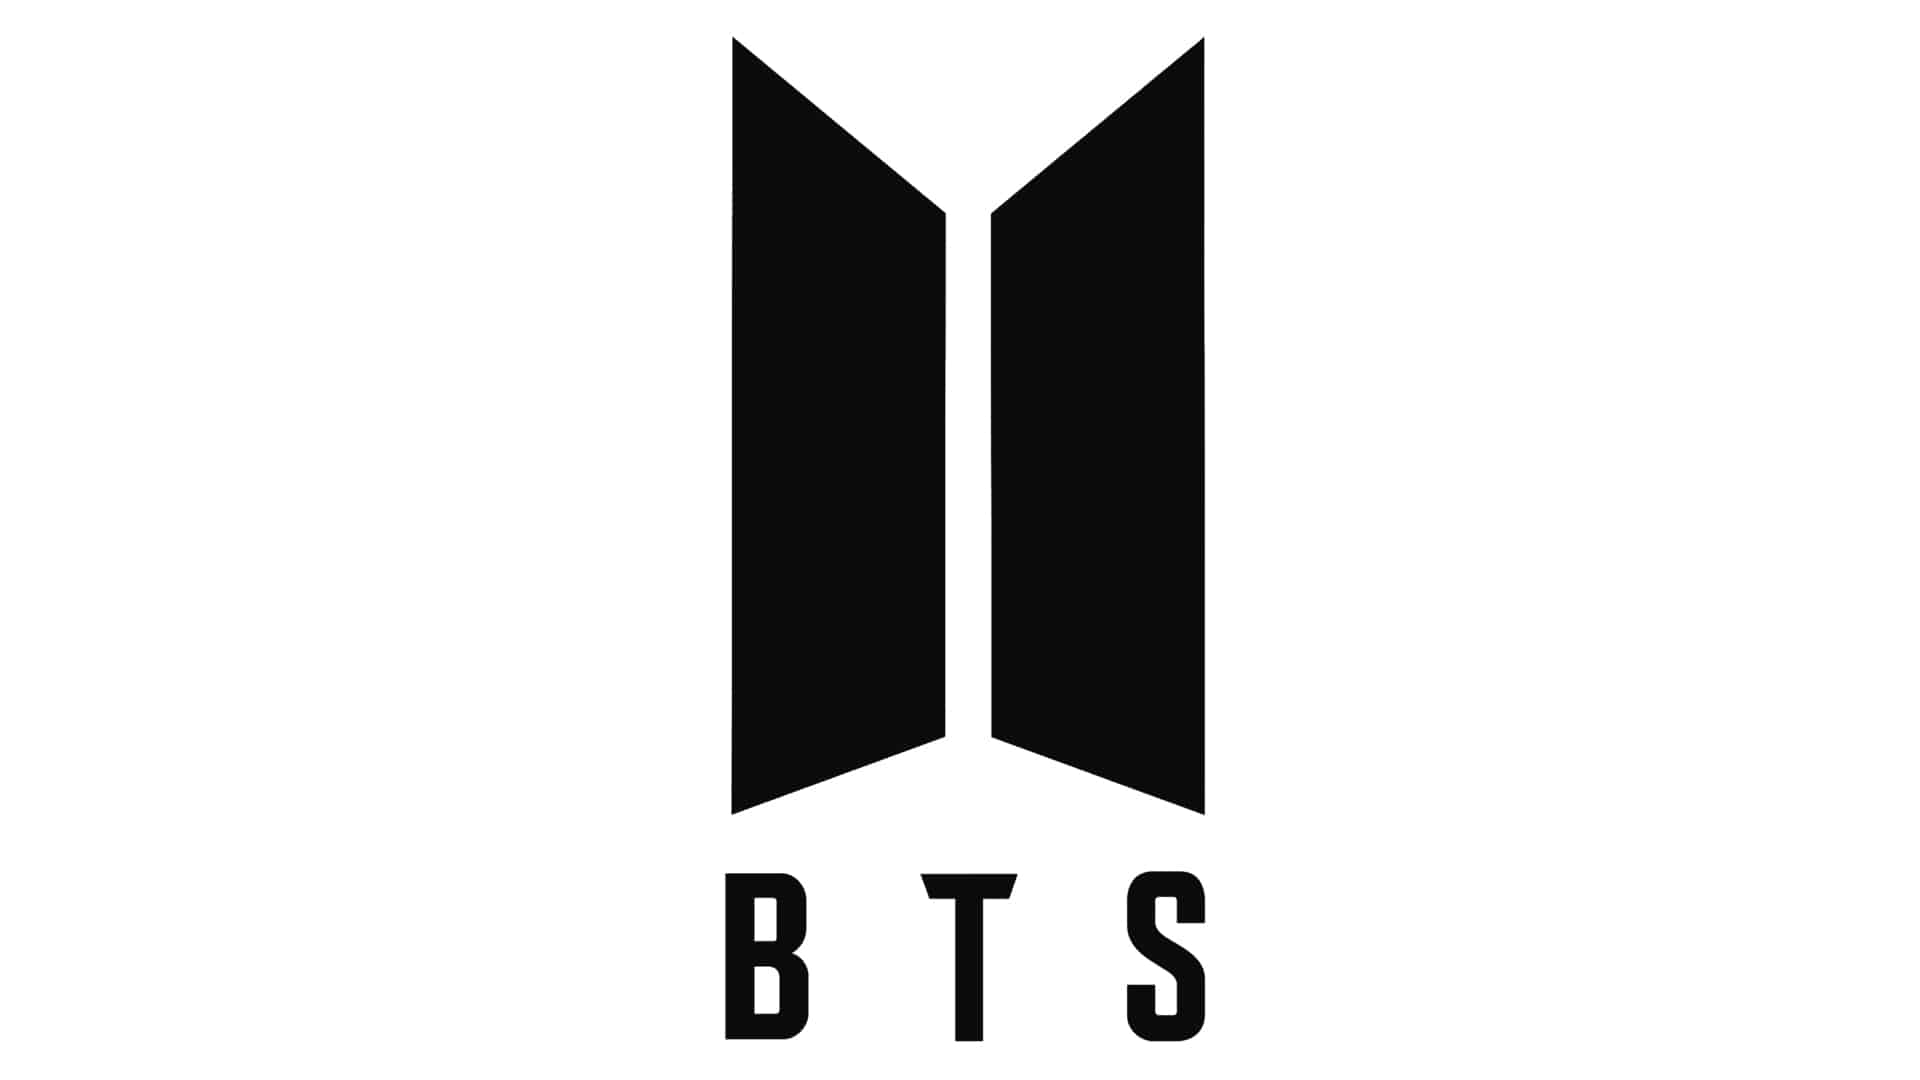 official BTS logo for BTS facts